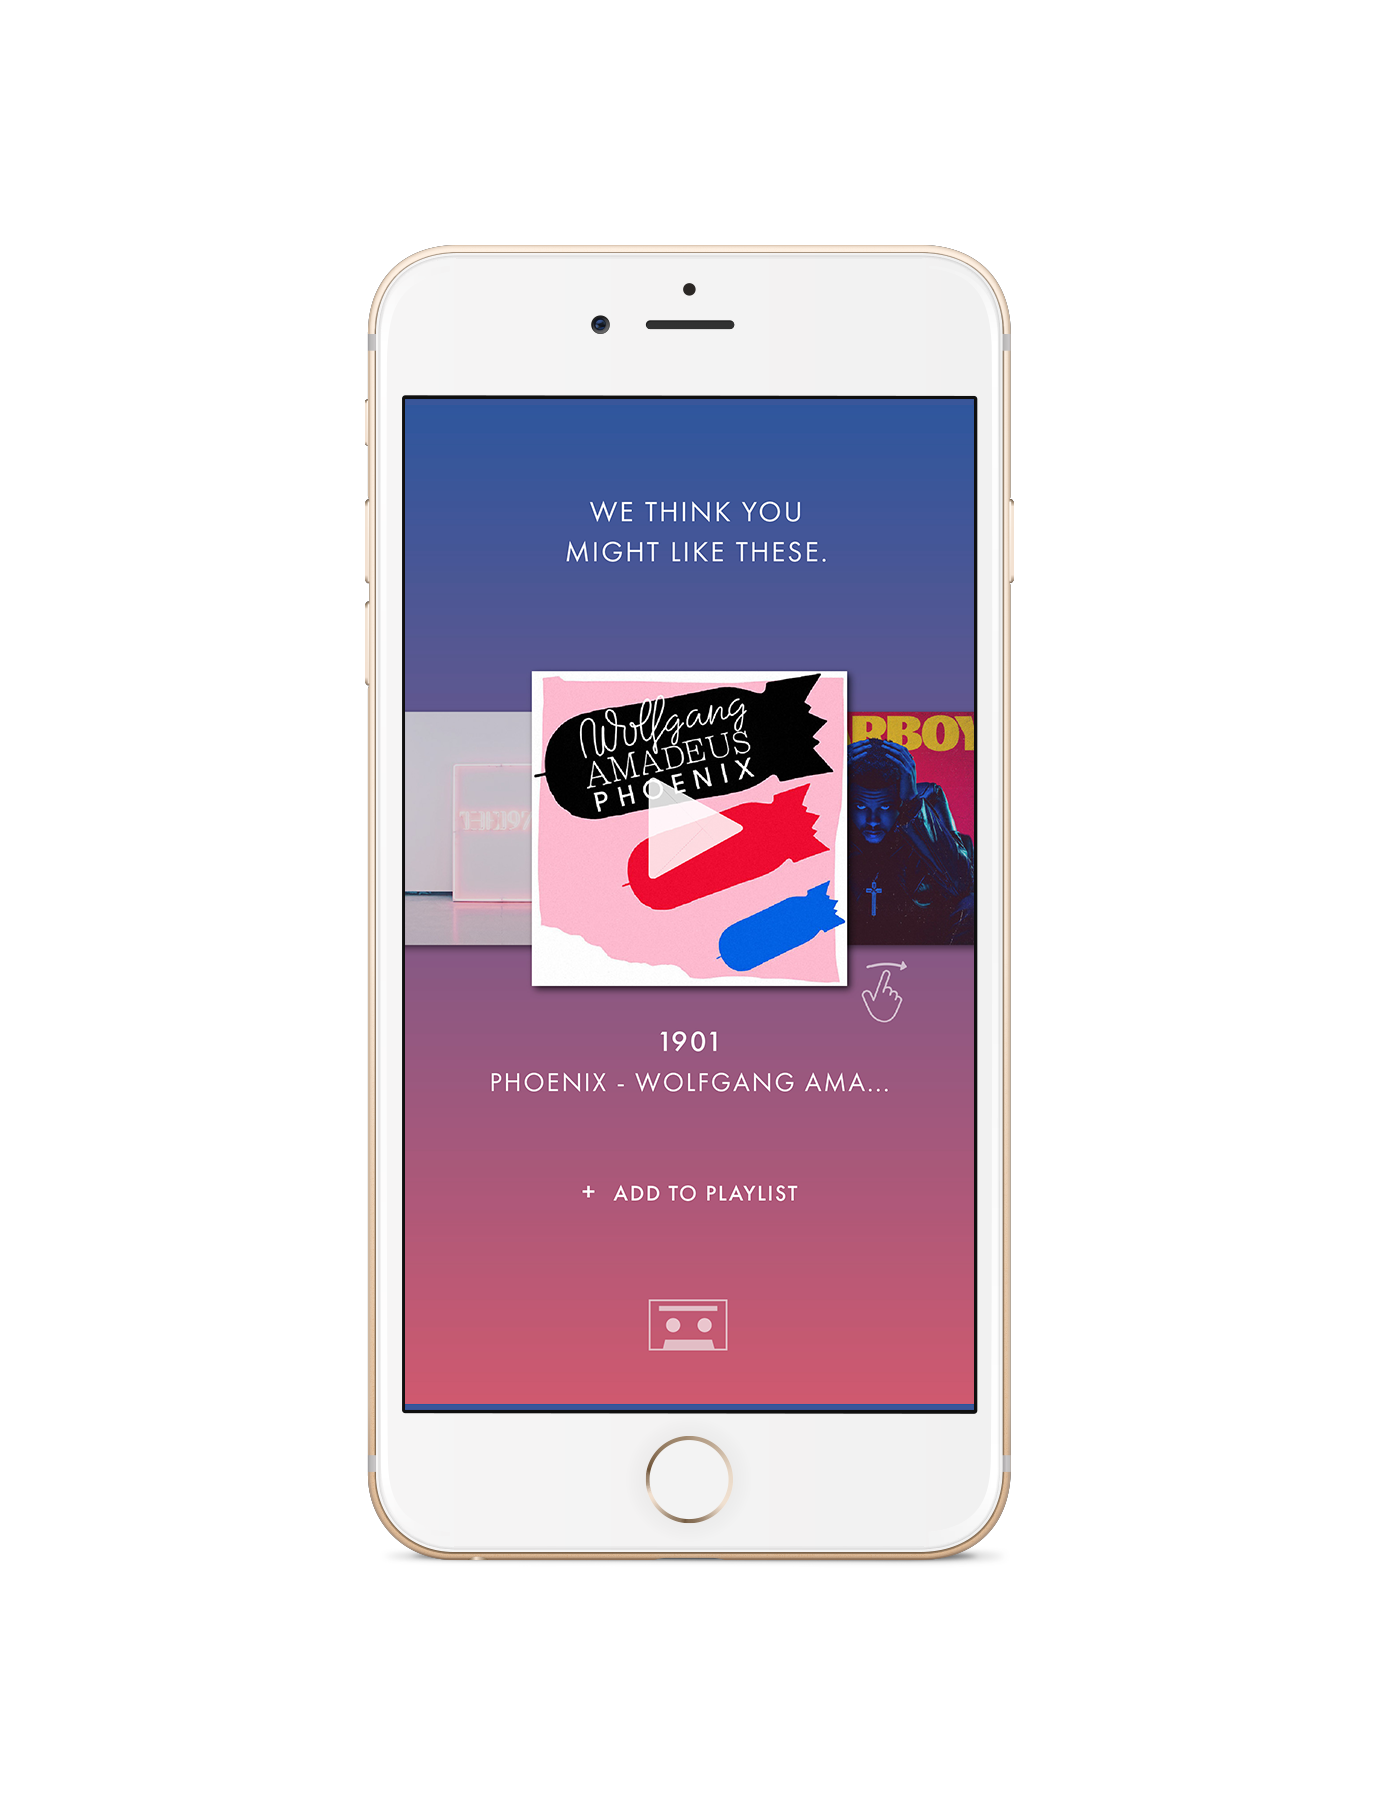 After obtaining the results, users can pick and choose what music suggestions they would like to add to their playlist(s). These results will feature a smaller selection of music that is better curated to the individual's unique taste.